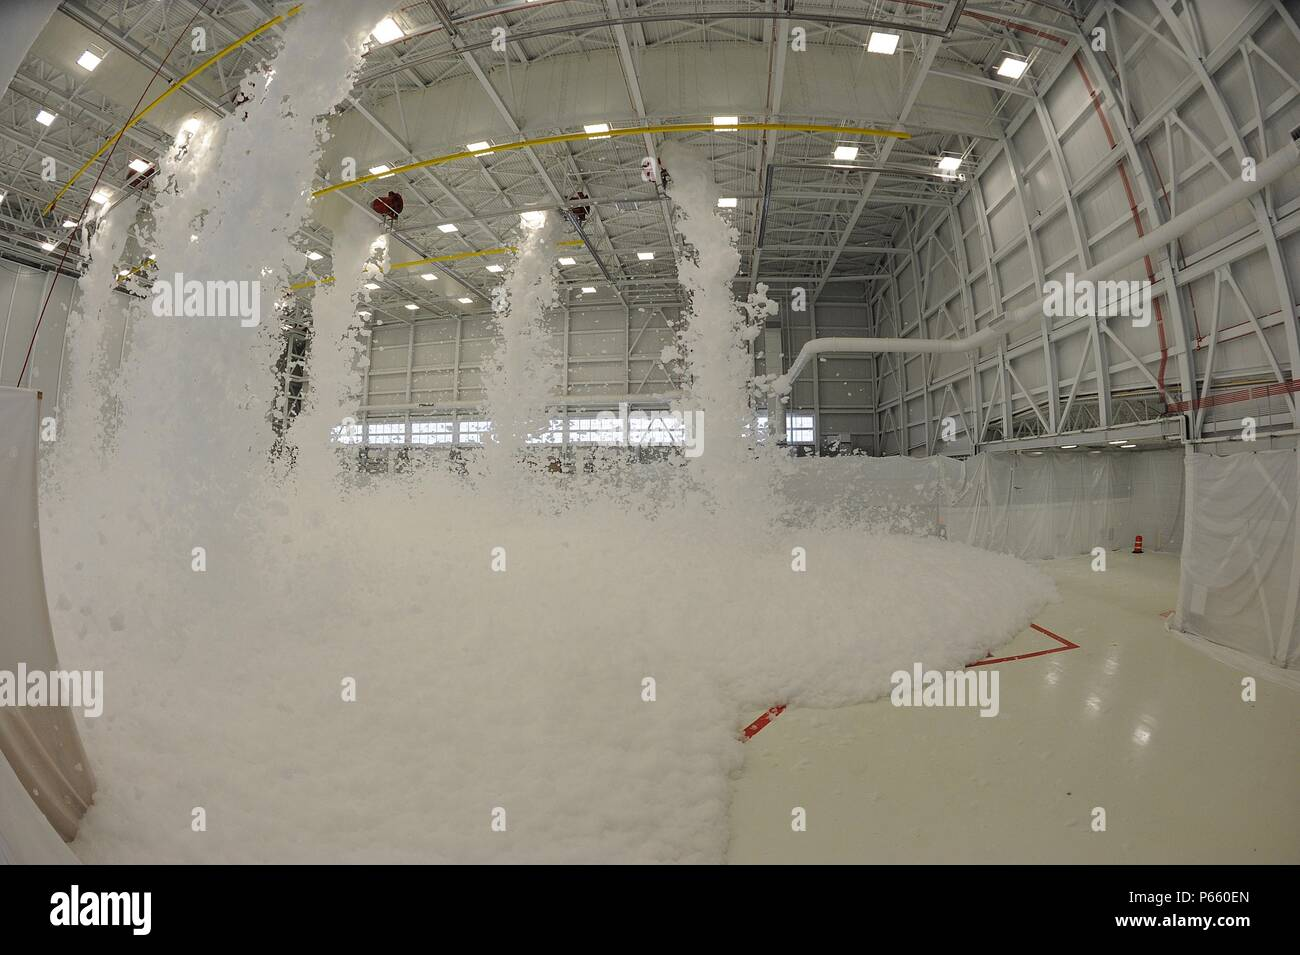 Foam rains down in a hangar during a fire suppression safety test, May 3, 2016, at McConnell Air Force Base, Kan. The new hangars will house the KC-46's, which are scheduled to arrive here in Spring 2017. As a safety feature, foam is dispensed from generators in the top of the hangar which expand and suffocate fire. (U.S. Air Force photo/Airman 1st Class Jenna K. Caldwell) - Stock Image